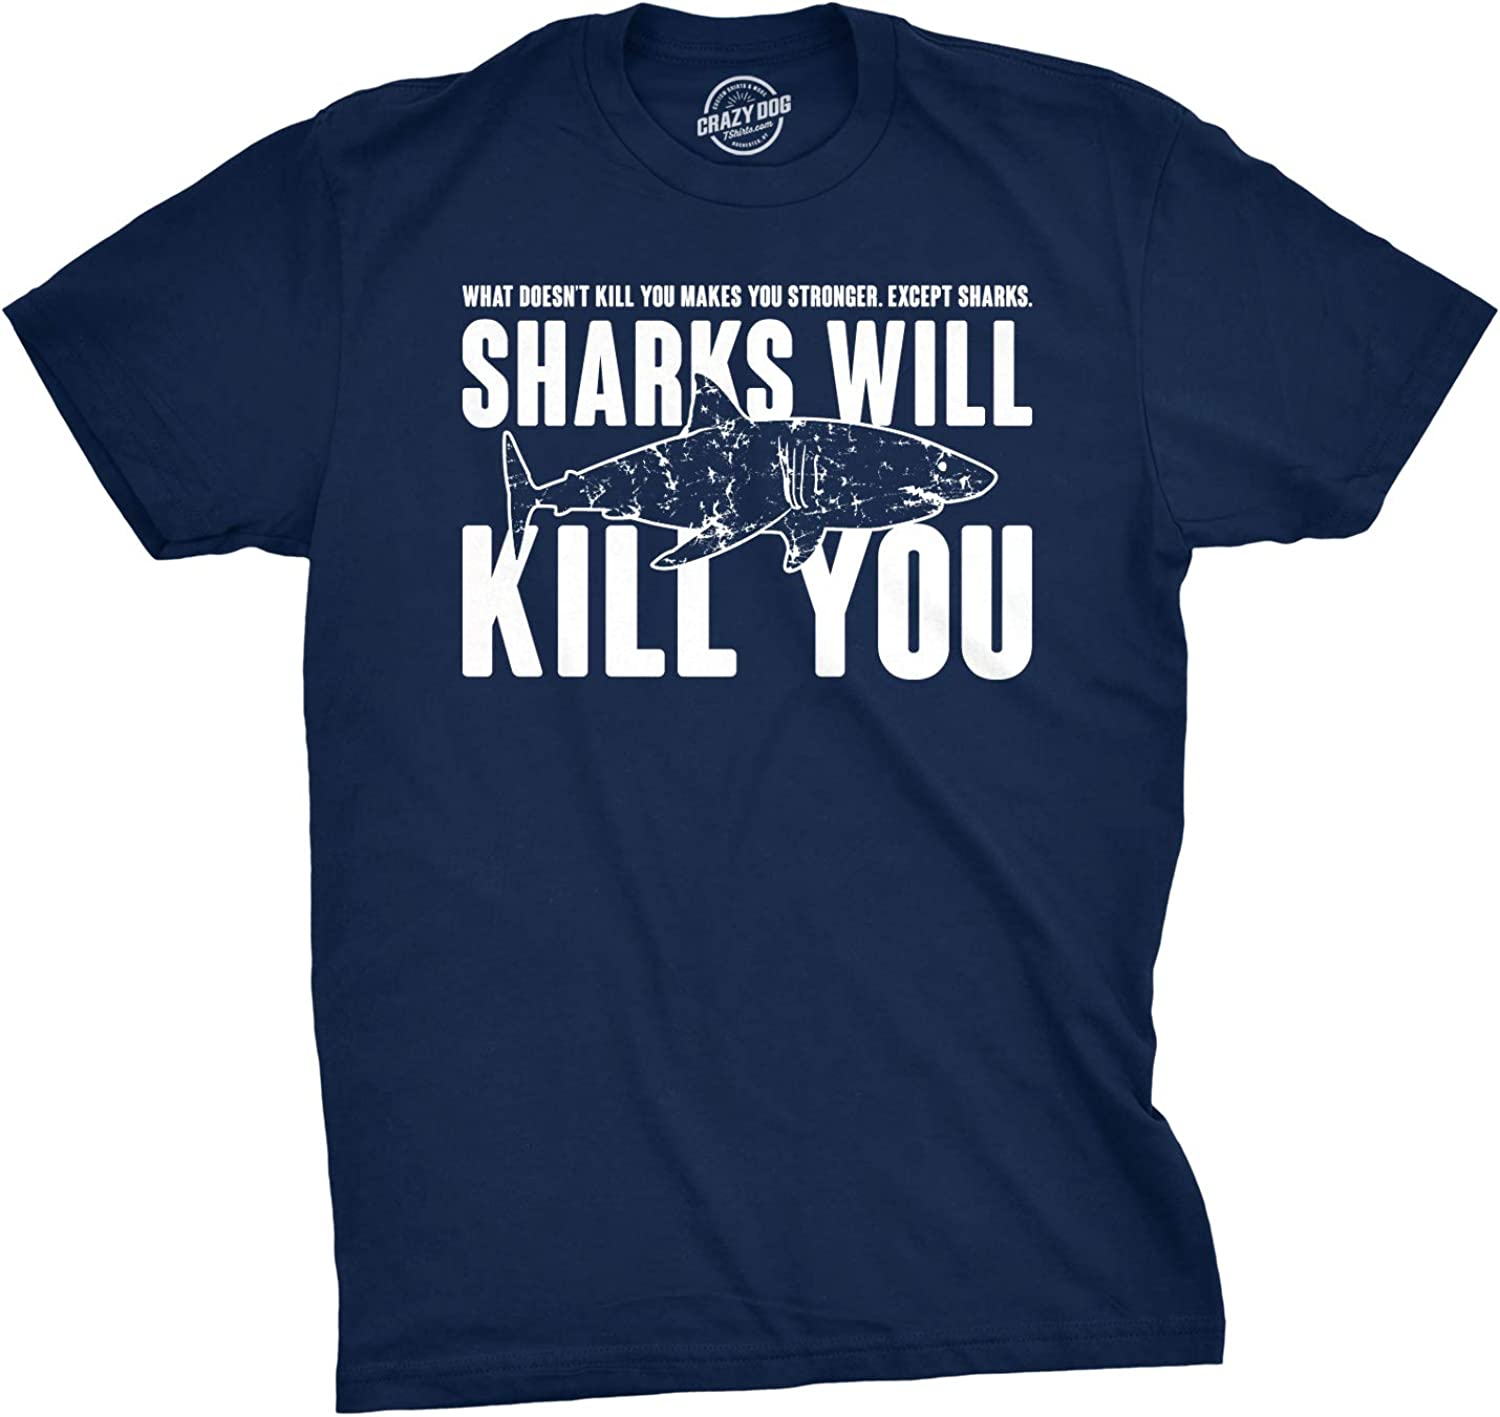 Crazy Dog T-Shirts Mens Sharks Will Kill You T Shirt Funny Whatever Doesn't Kill You Stronger Tee M Blue